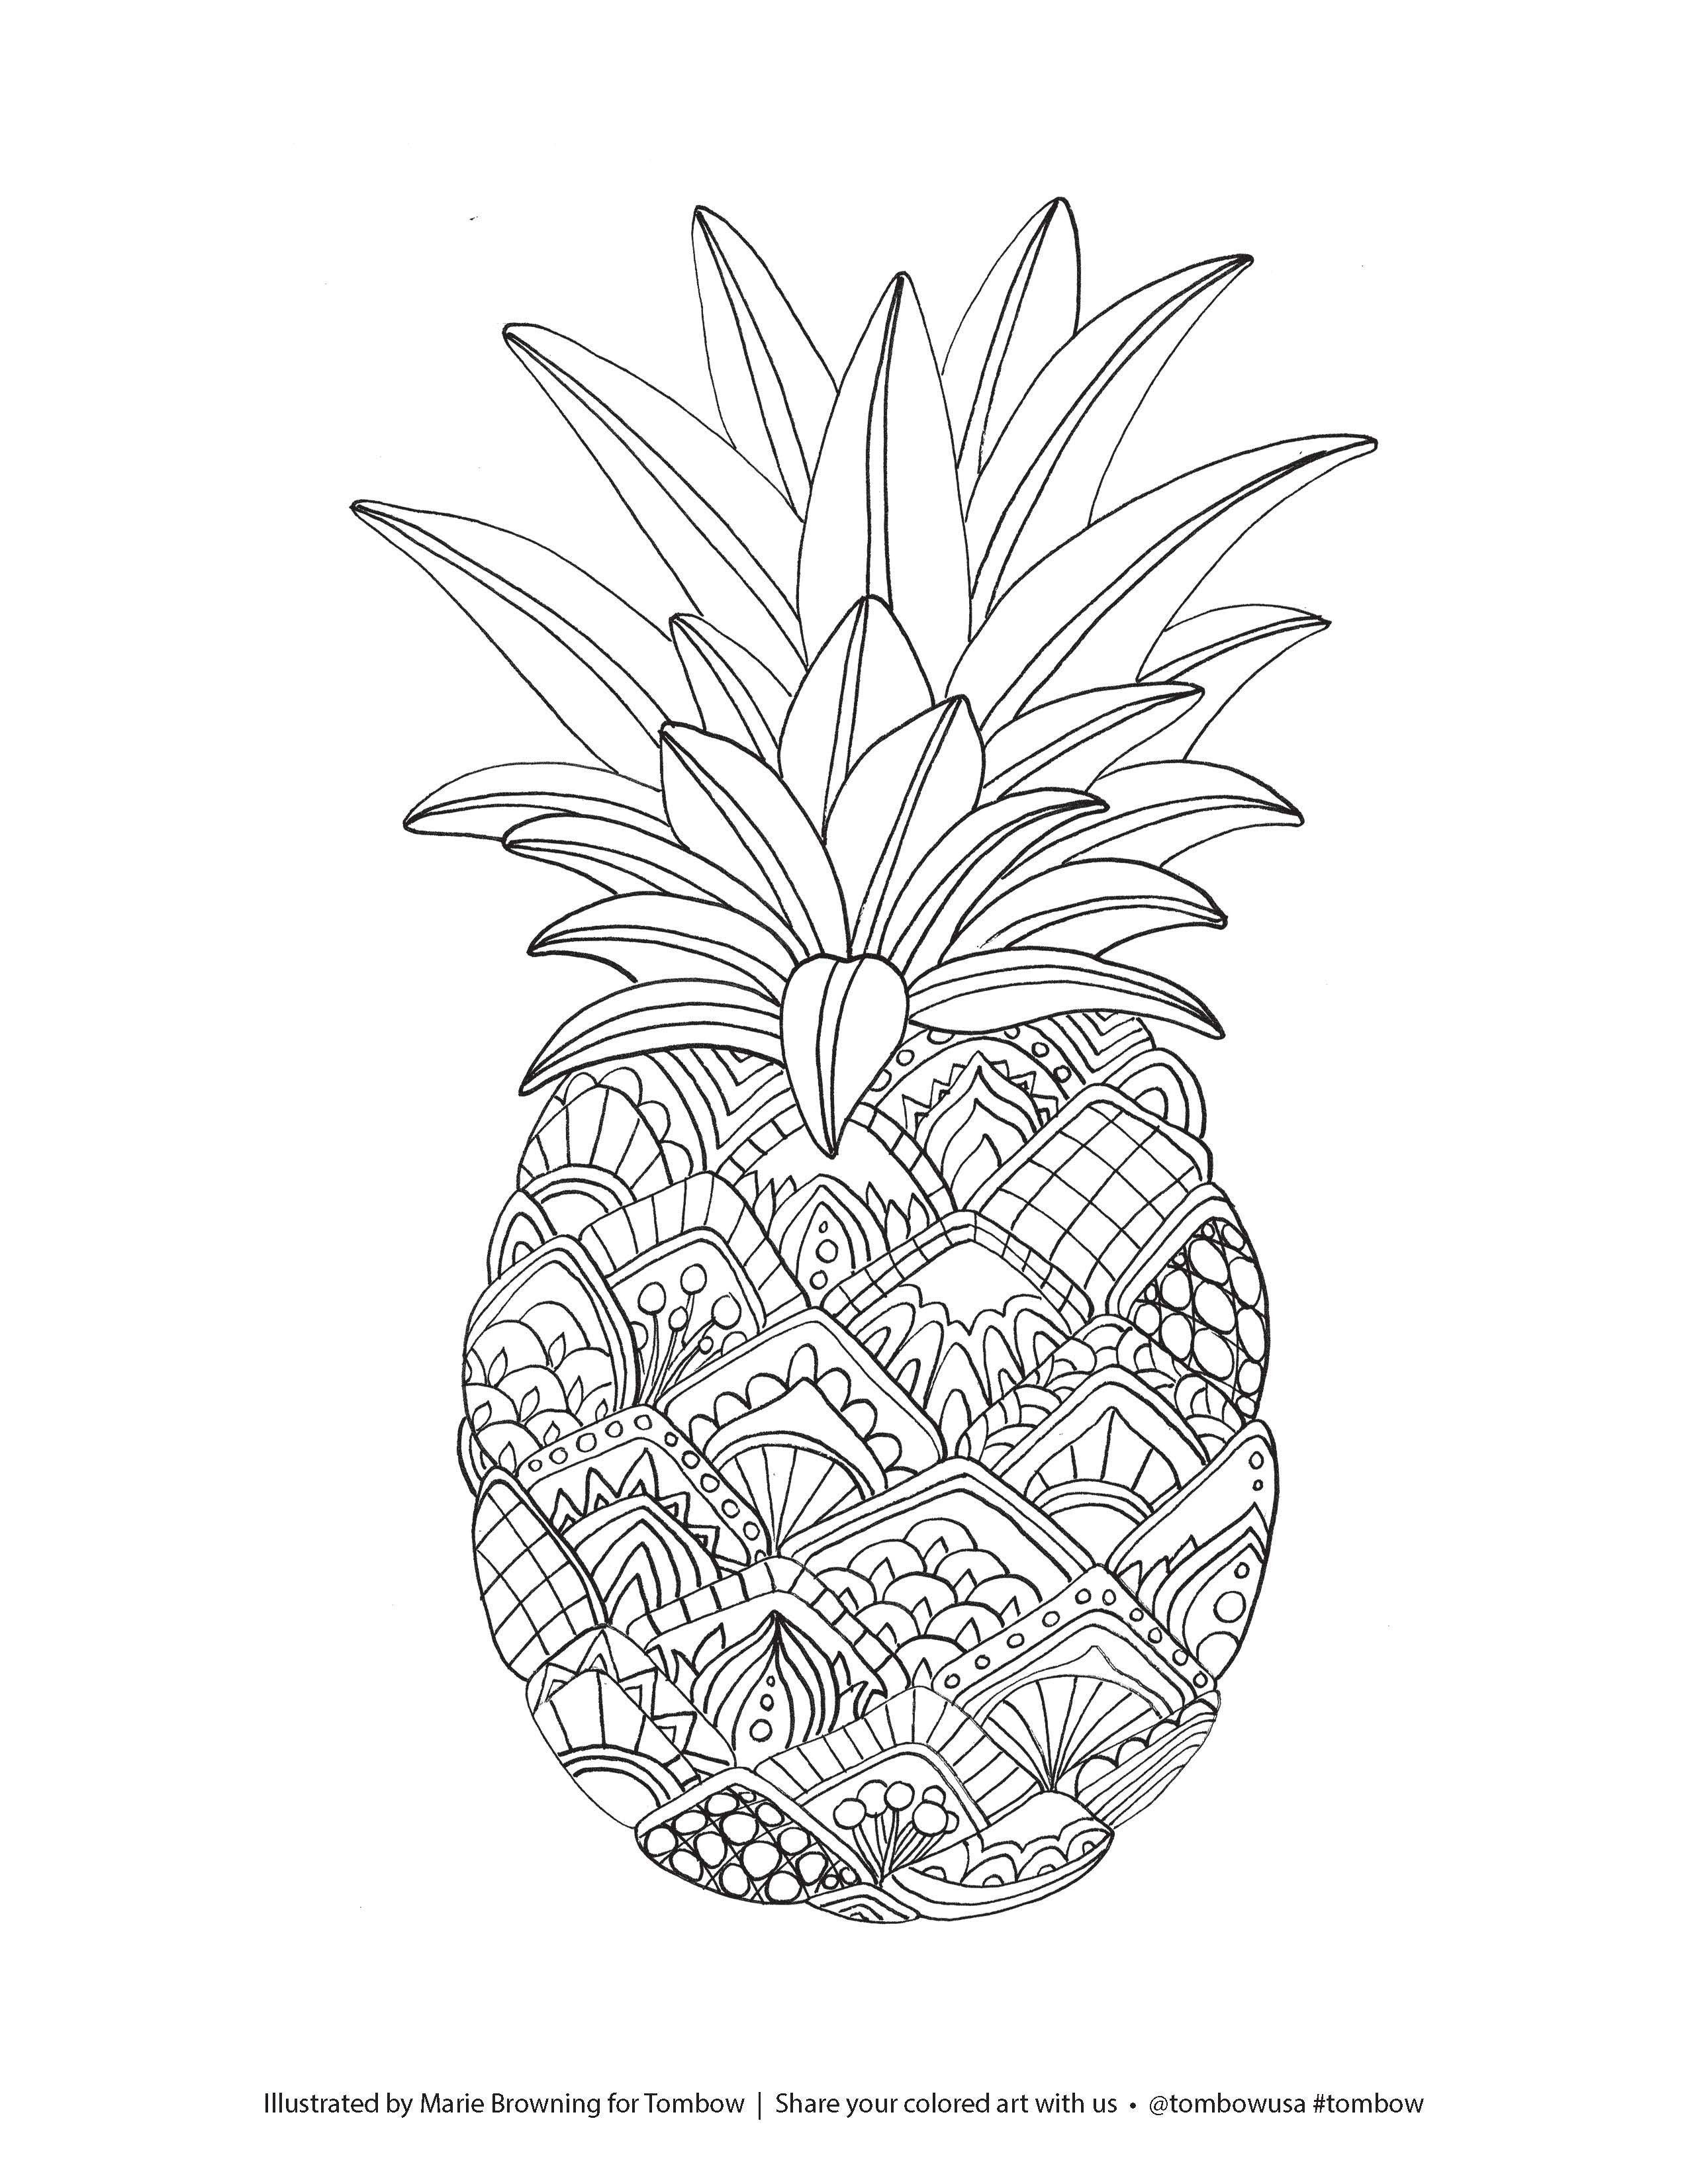 Zentangle Pineapple Coloring Page illustrated by Marie